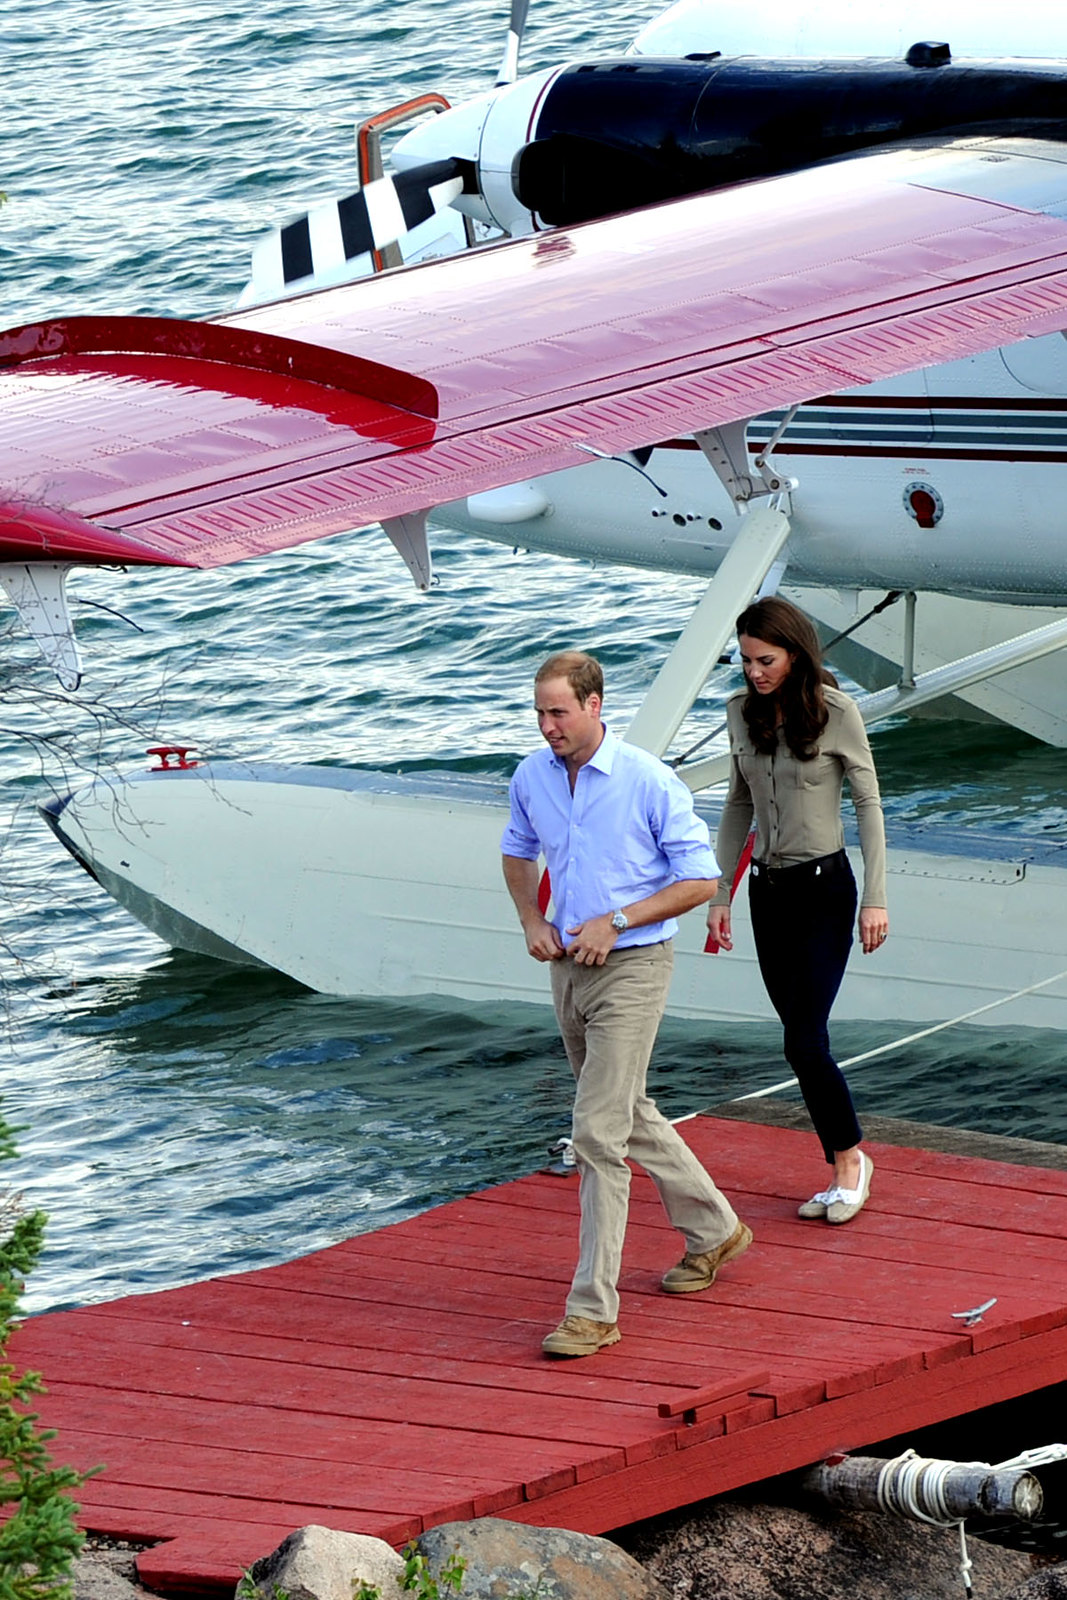 The Duke and Duchess of Cambridge arrived in Blachford in a floatplane